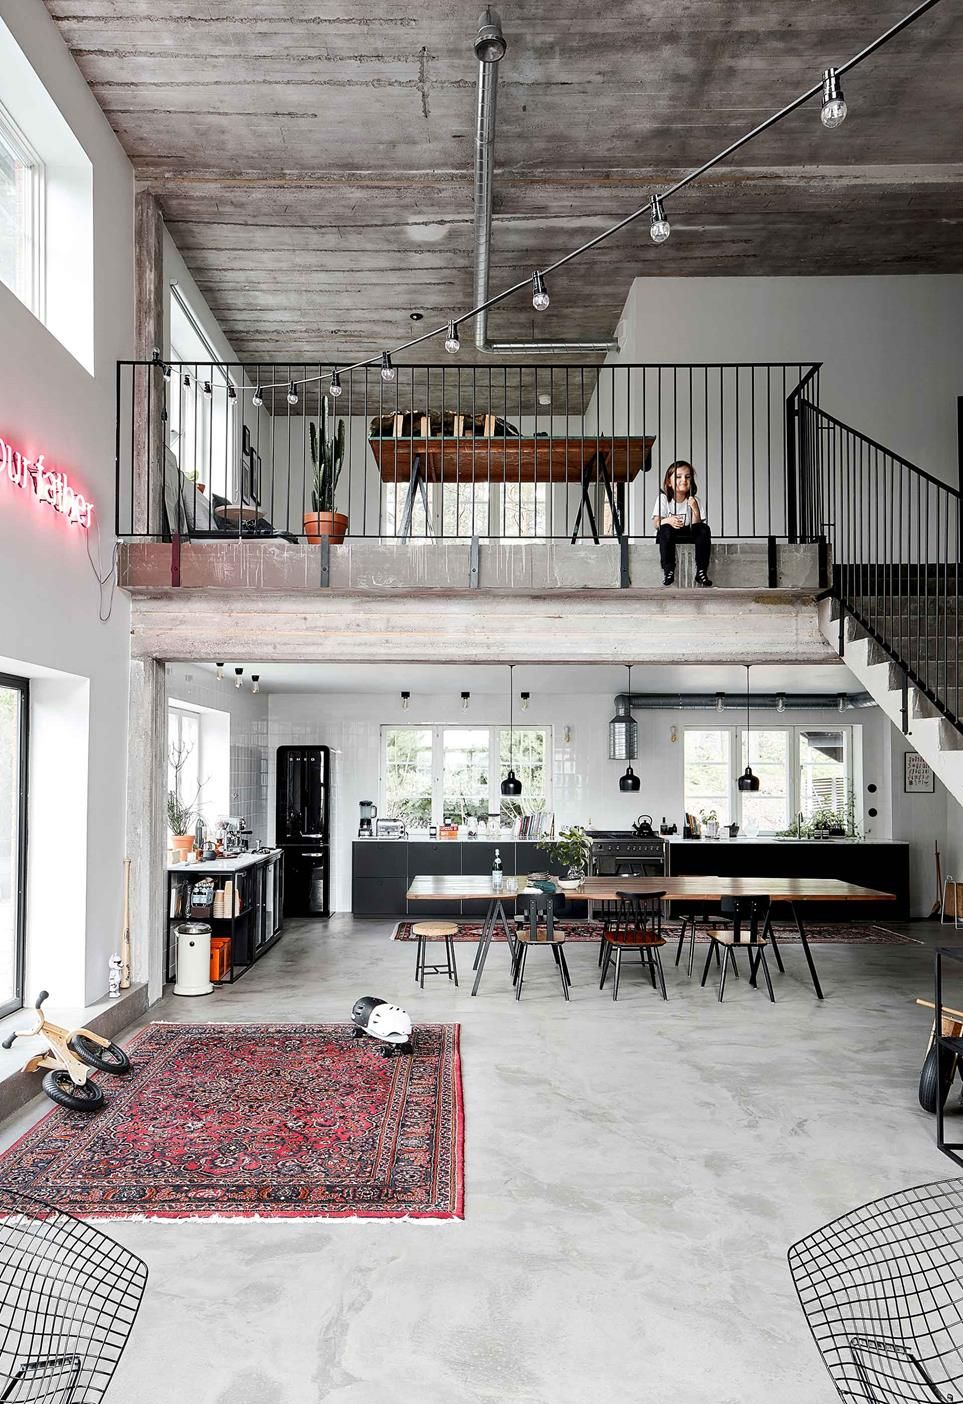 A Ski Factory S Industrial Chic Loft Home Conversion Industrial Loft Design Industrial Home Design Rustic Home Interiors